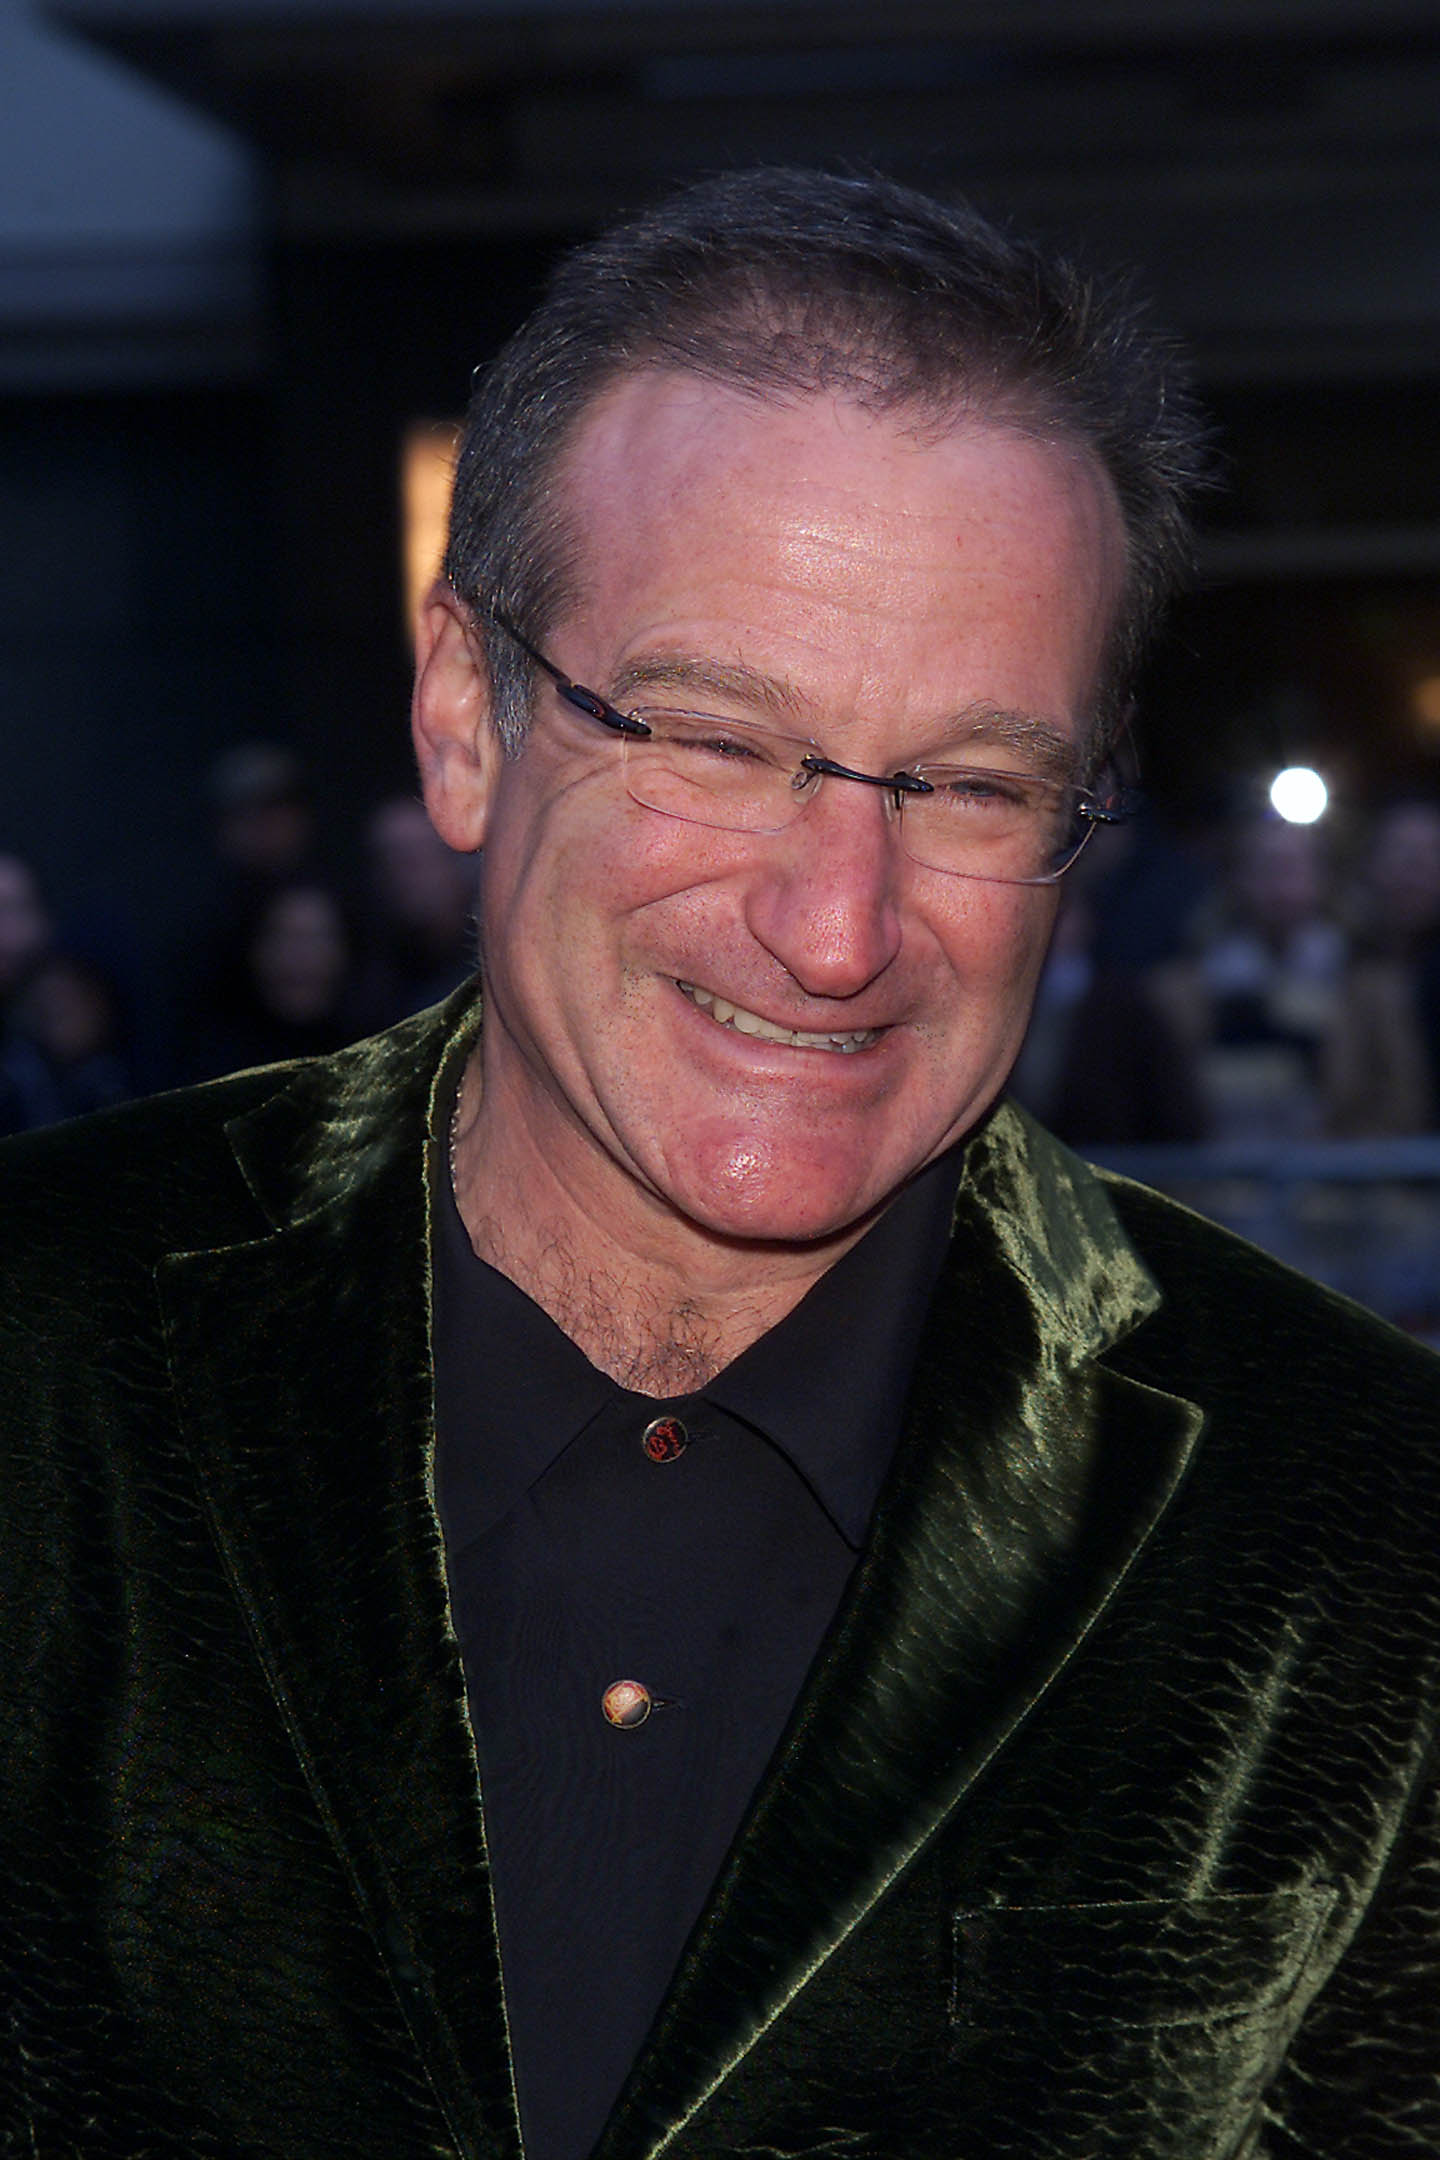 """Actor Robin Williams at the N.Y. Premiere of """"Harry Potter and the Sorcerer's Stone"""" at the Ziegfeld Theatre in New York City. 11/11/2001. Photo: Evan Agostini/ImageDirect"""